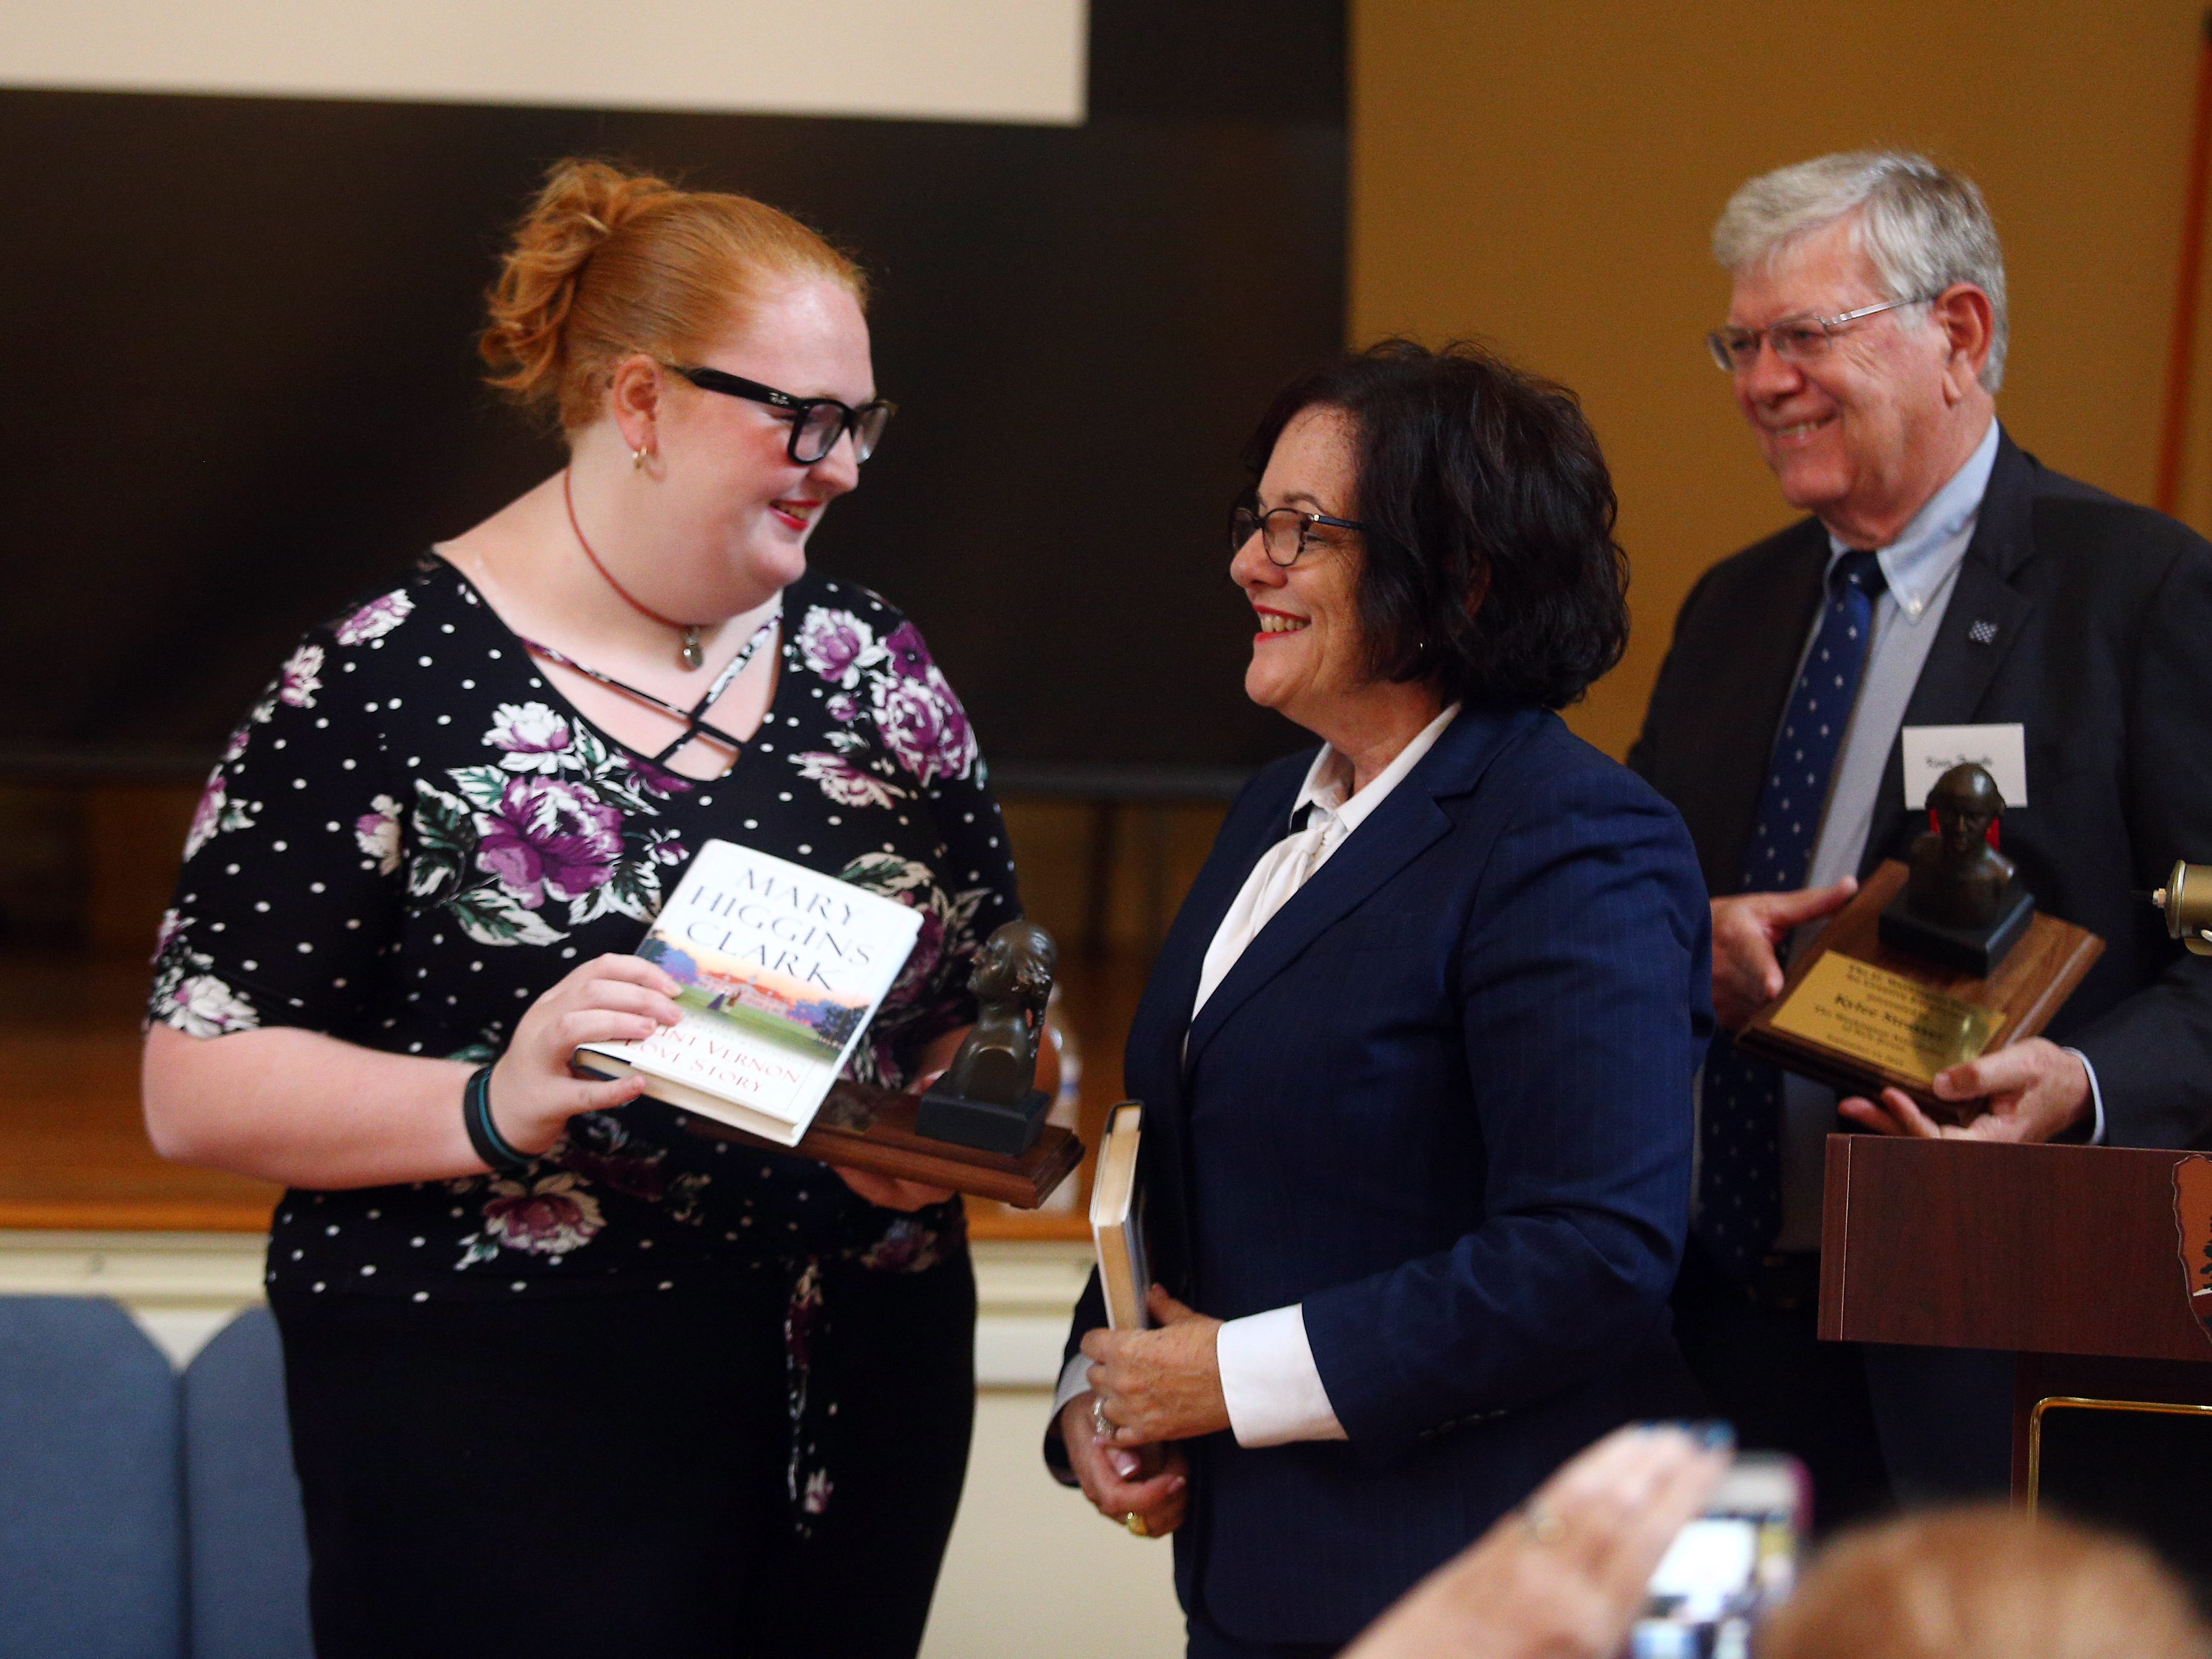 Morristown High School senior Katie Rosa accepts accept the George Washington Prize for Creative Excellence at Washington's Headquarters from Janice Selinger, Executive Director of the Crossroads of the American Revolution. Rosa and Kylee Strasser produced a film about historic Morristown. September 15, 2018, Morristown, NJ